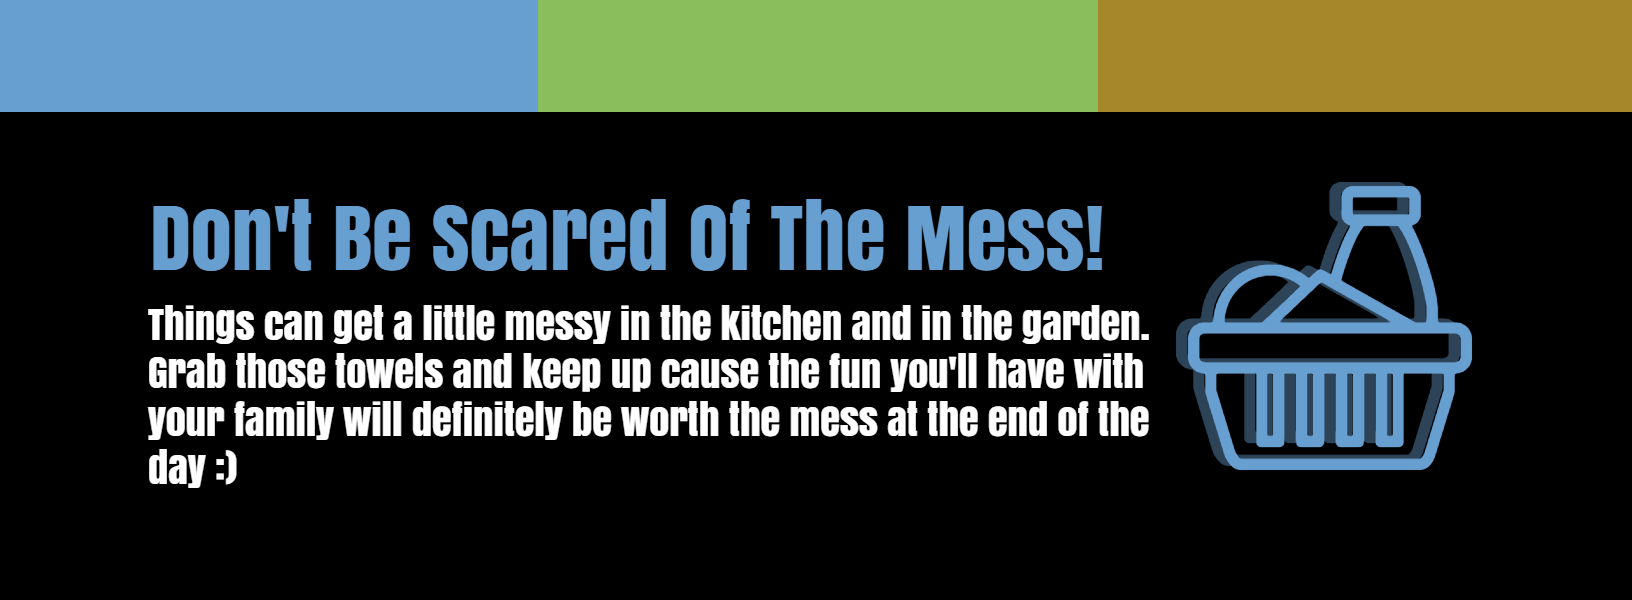 Don't Be Afraid Of The Mess!